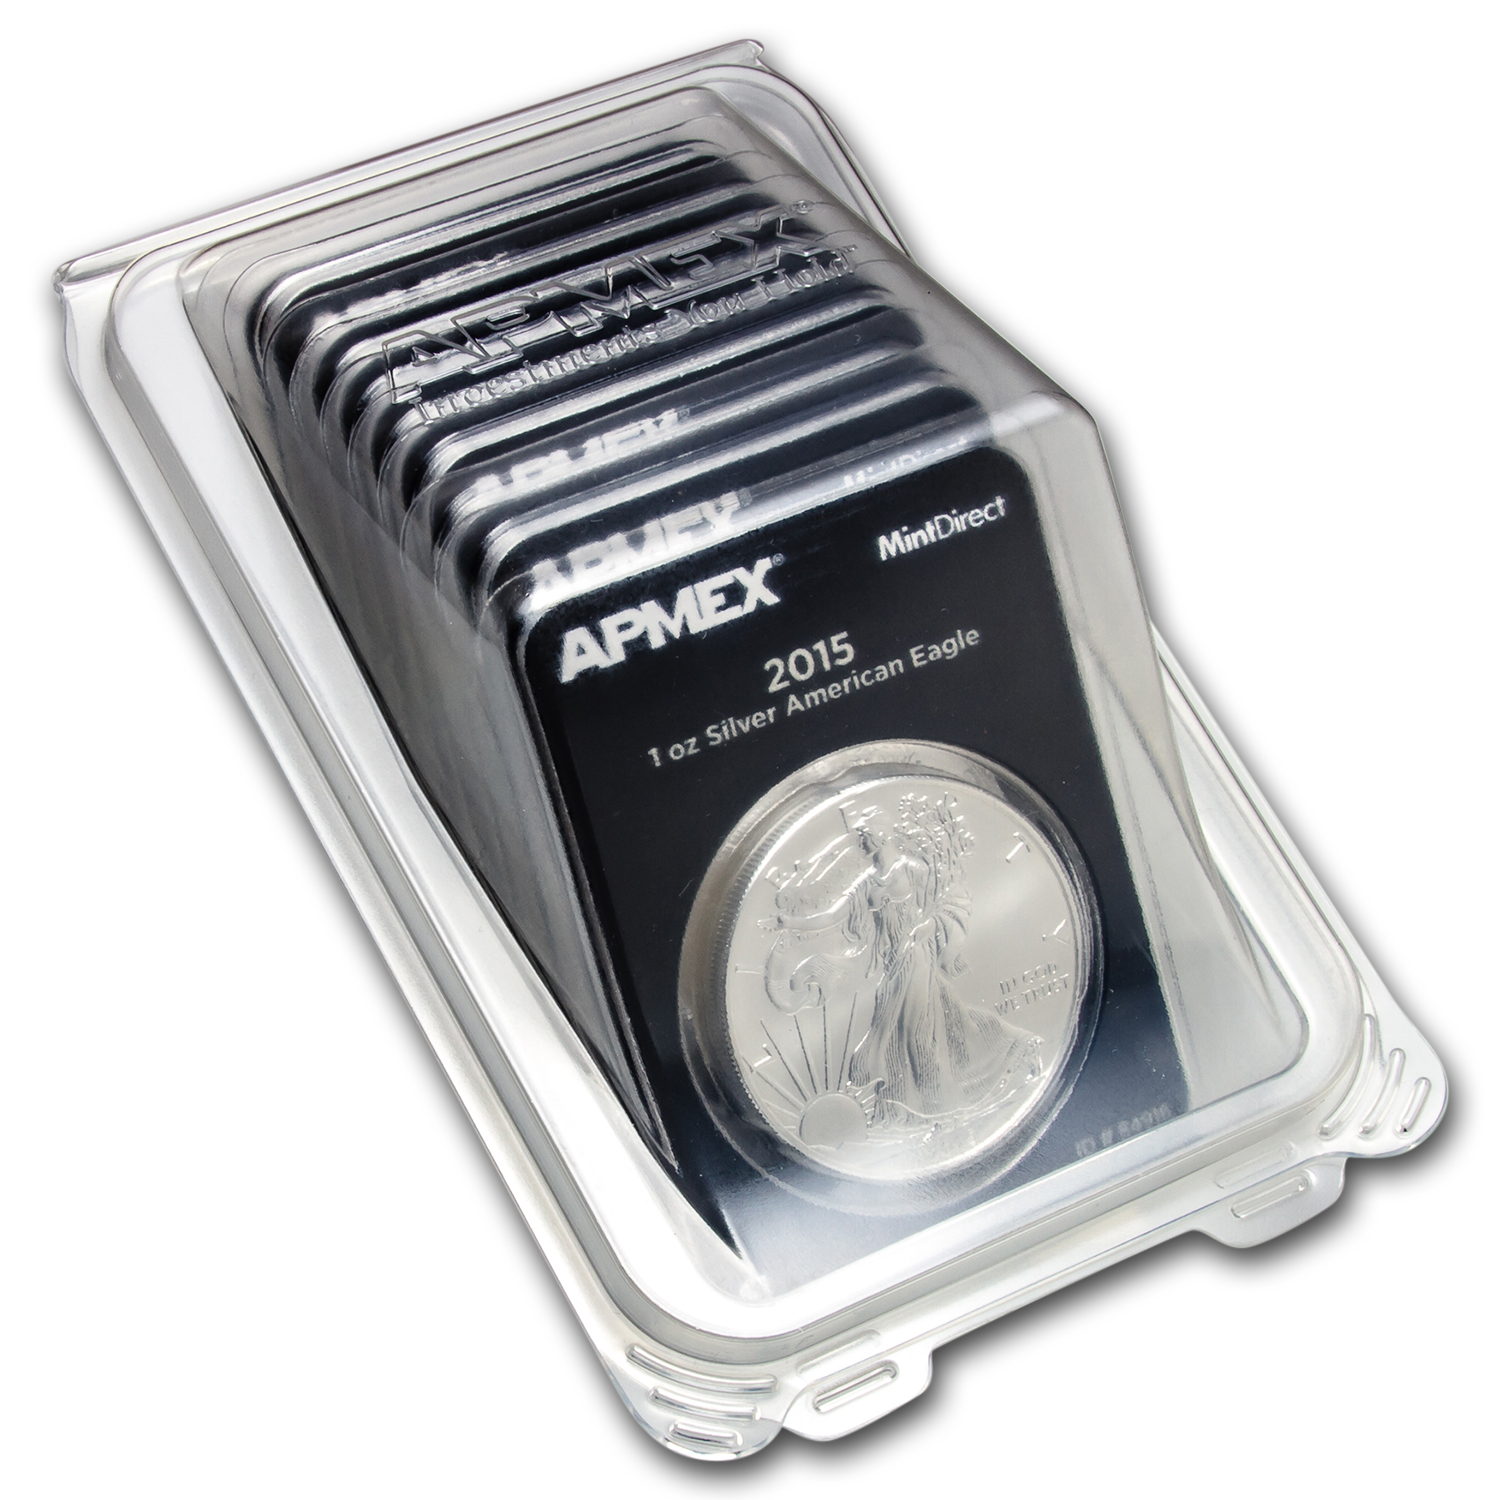 2015 1 oz Silver American Eagle (MintDirect® Single)